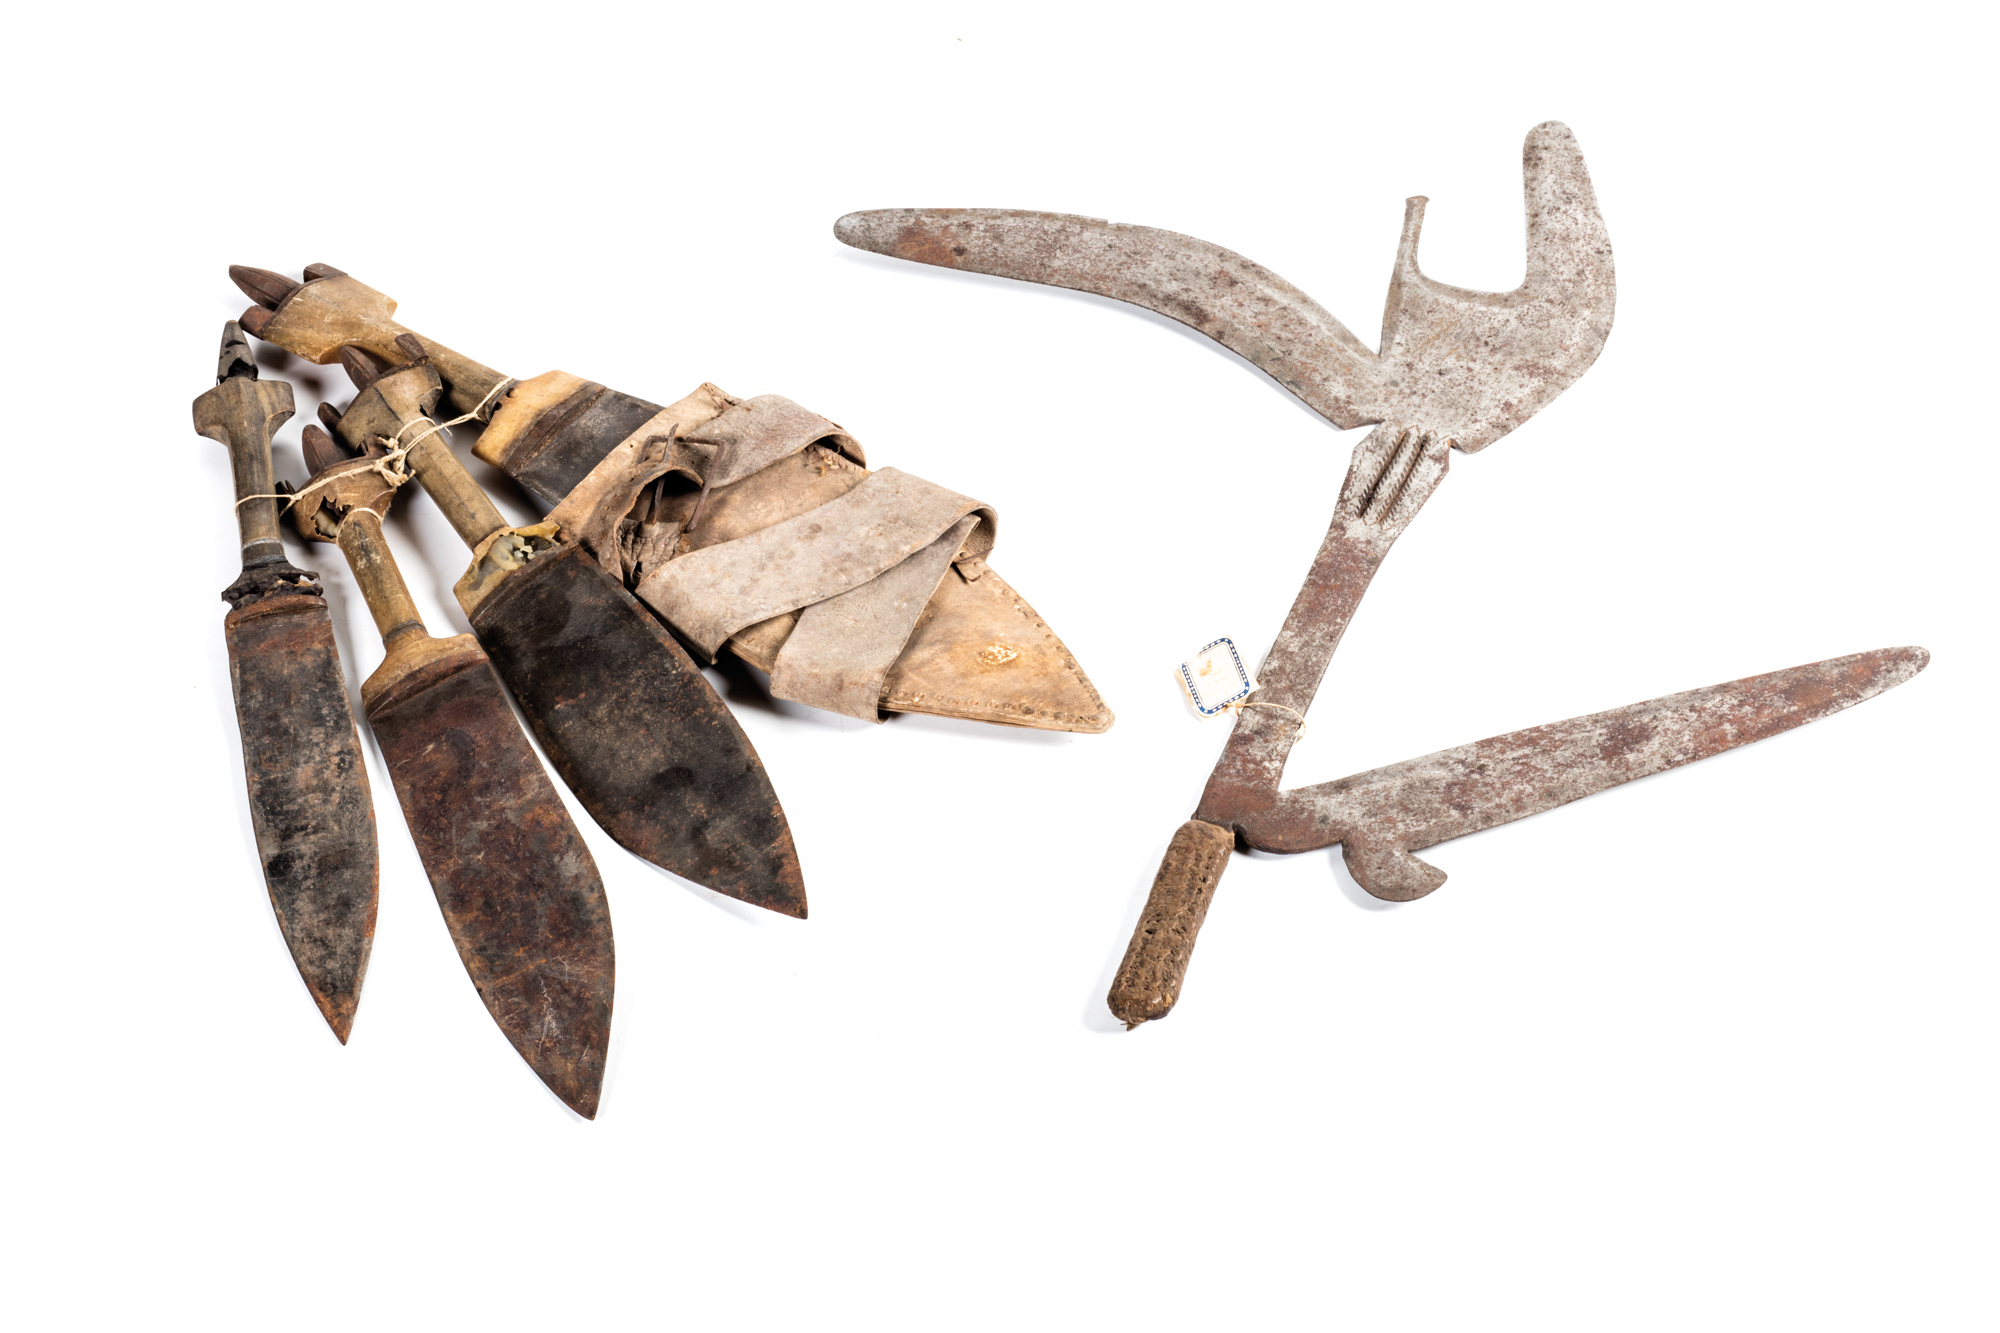 throwing knife with multiple blade, from Congo, lenght 47 cm; four dagger, one with leather scabbard, lenght from 32 to 40 cm; Asandè polychrome fiber shield, with wooden handle, 93 x 40 cm; Galla and Sidama tribes warrior hunters spears, Gomma 1938  a) 69,5 cm b) 60,5 cm c) 39 cm d) 45 cm